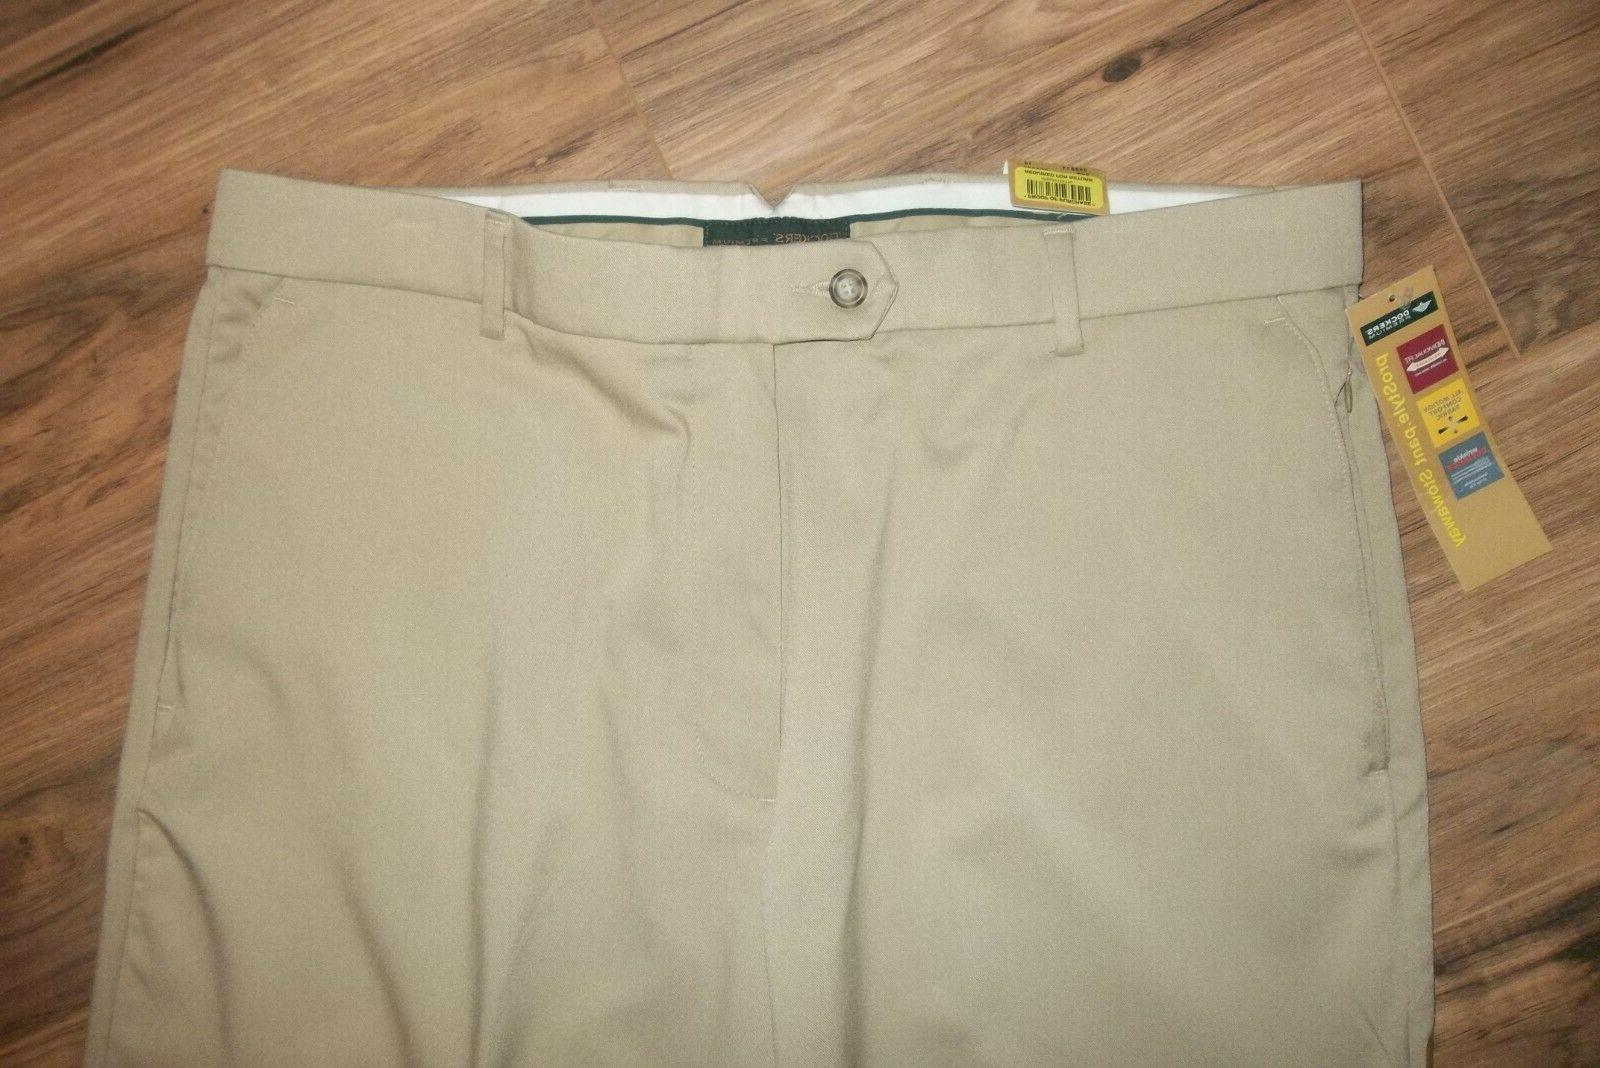 NWT Men's DOCKERS Dress Pants SIZE 36 x 34 Individual Relaxed